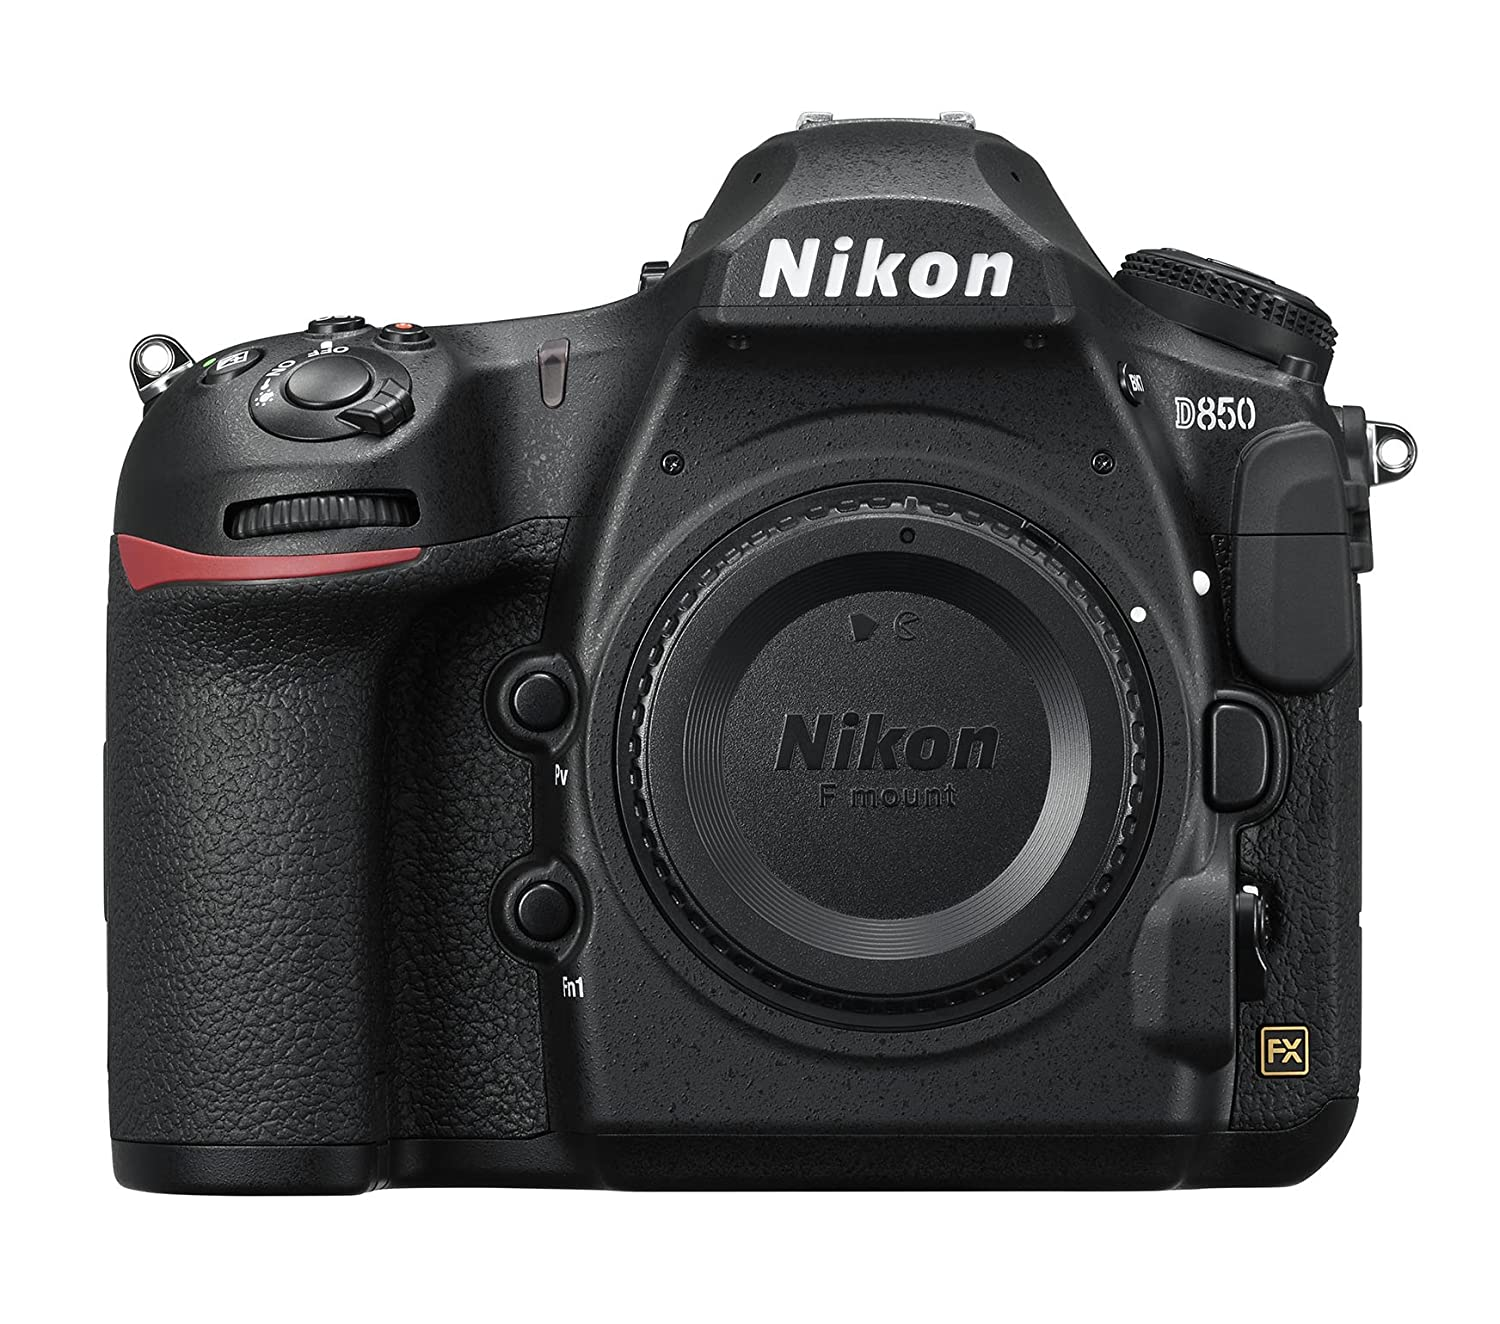 Best Nikon camera for Professionals